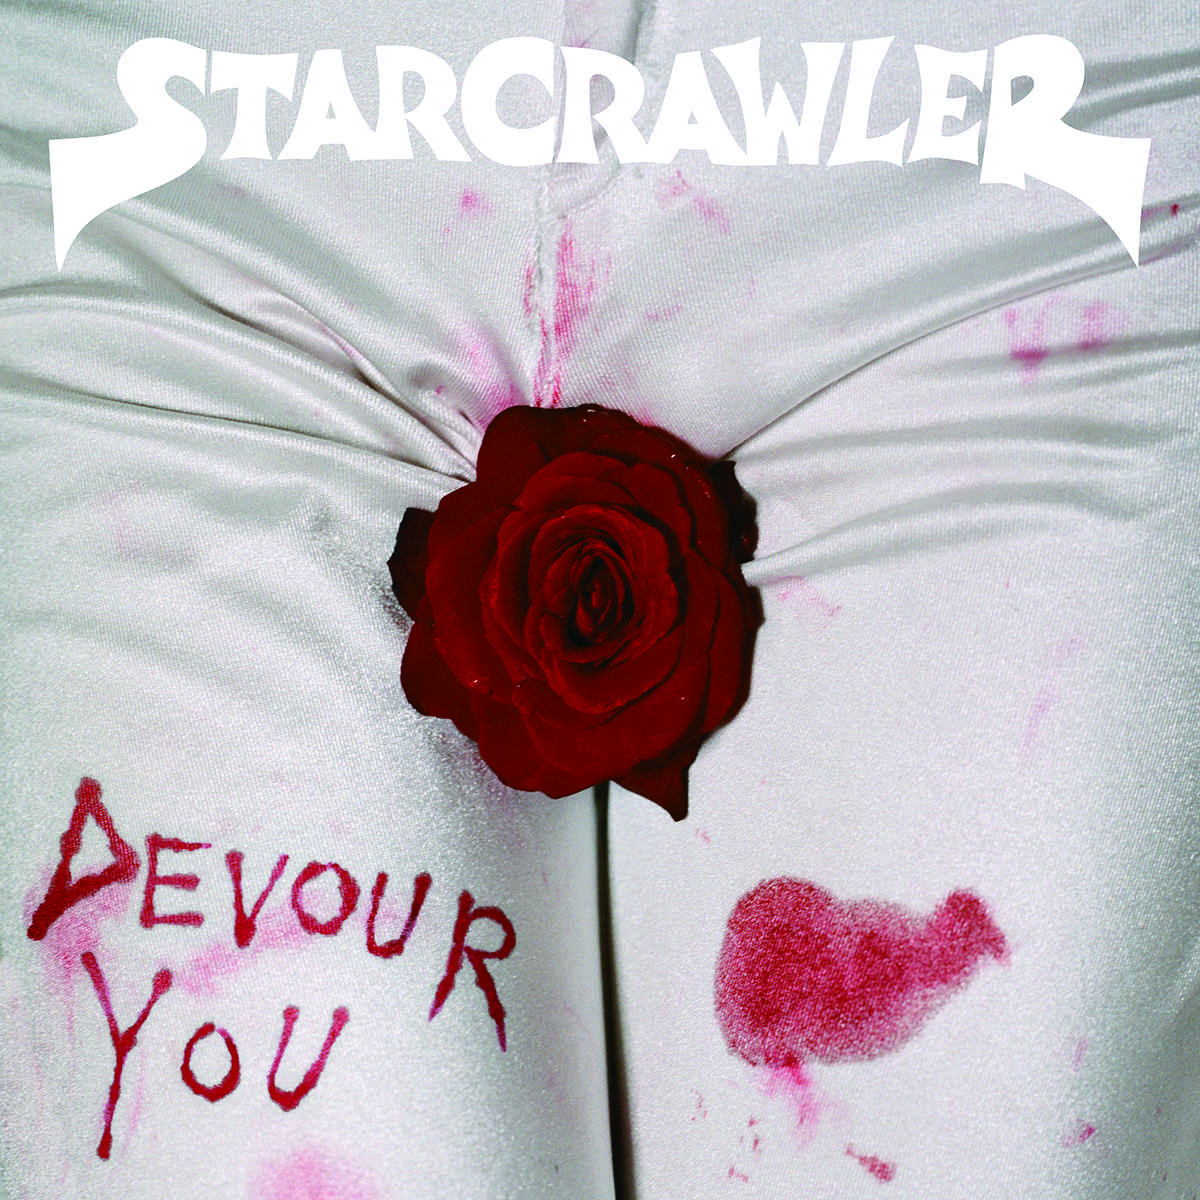 MUSIC  『Devour You』 Starcrawler